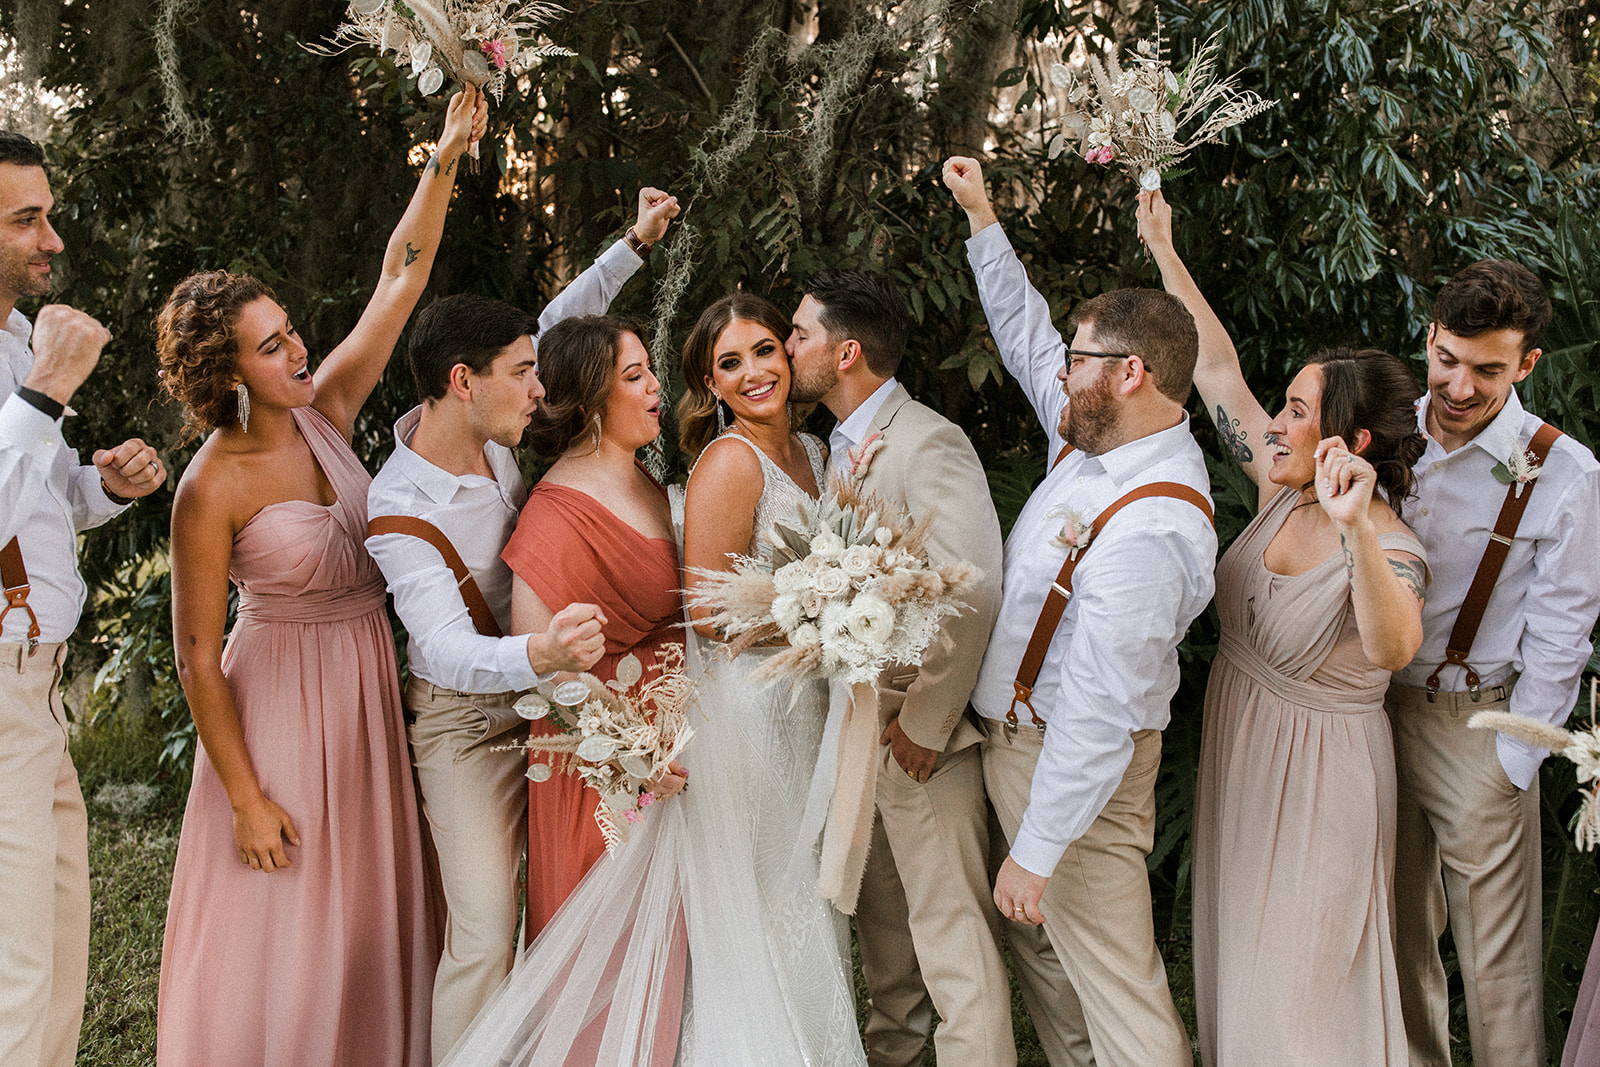 Real Bride and Groom Kissing at Outdoor Wedding with Bridal Party Cheering on the Side